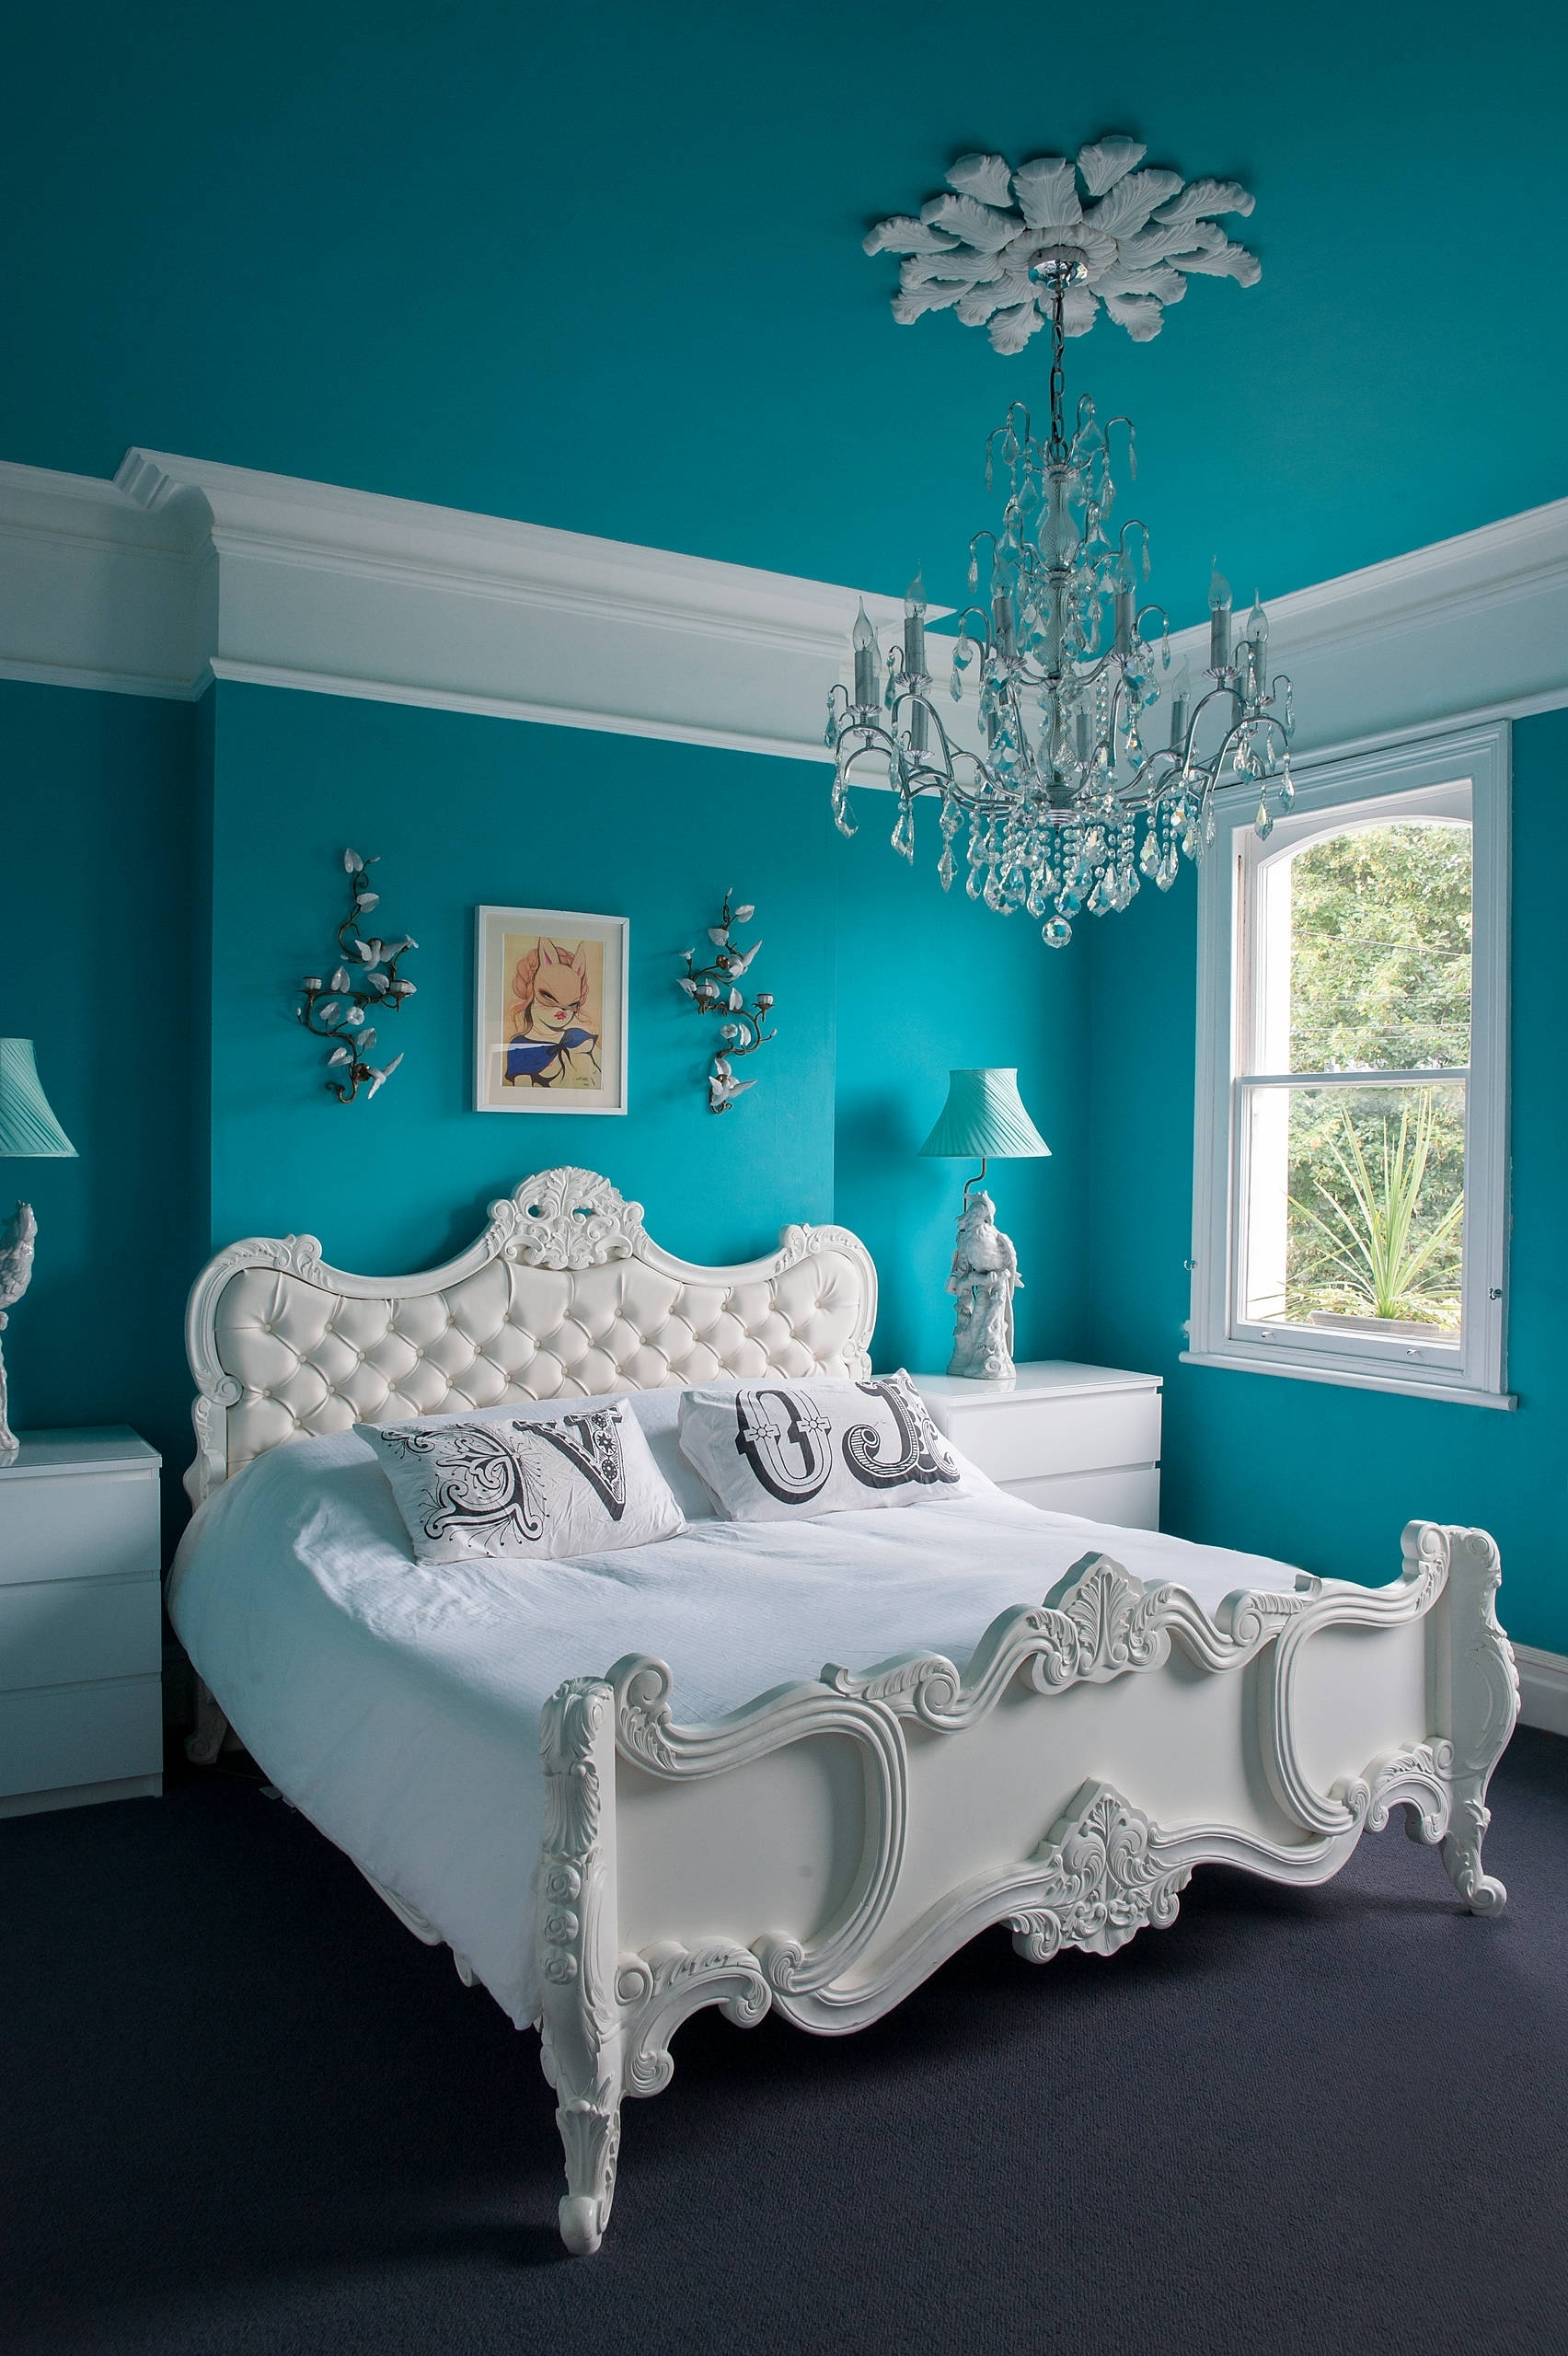 Turquoise Bedroom Chandeliers Intended For Most Recently Released Bedroom: Turquoise Room Ideas For Modern Bedroom Design Idea (View 5 of 15)